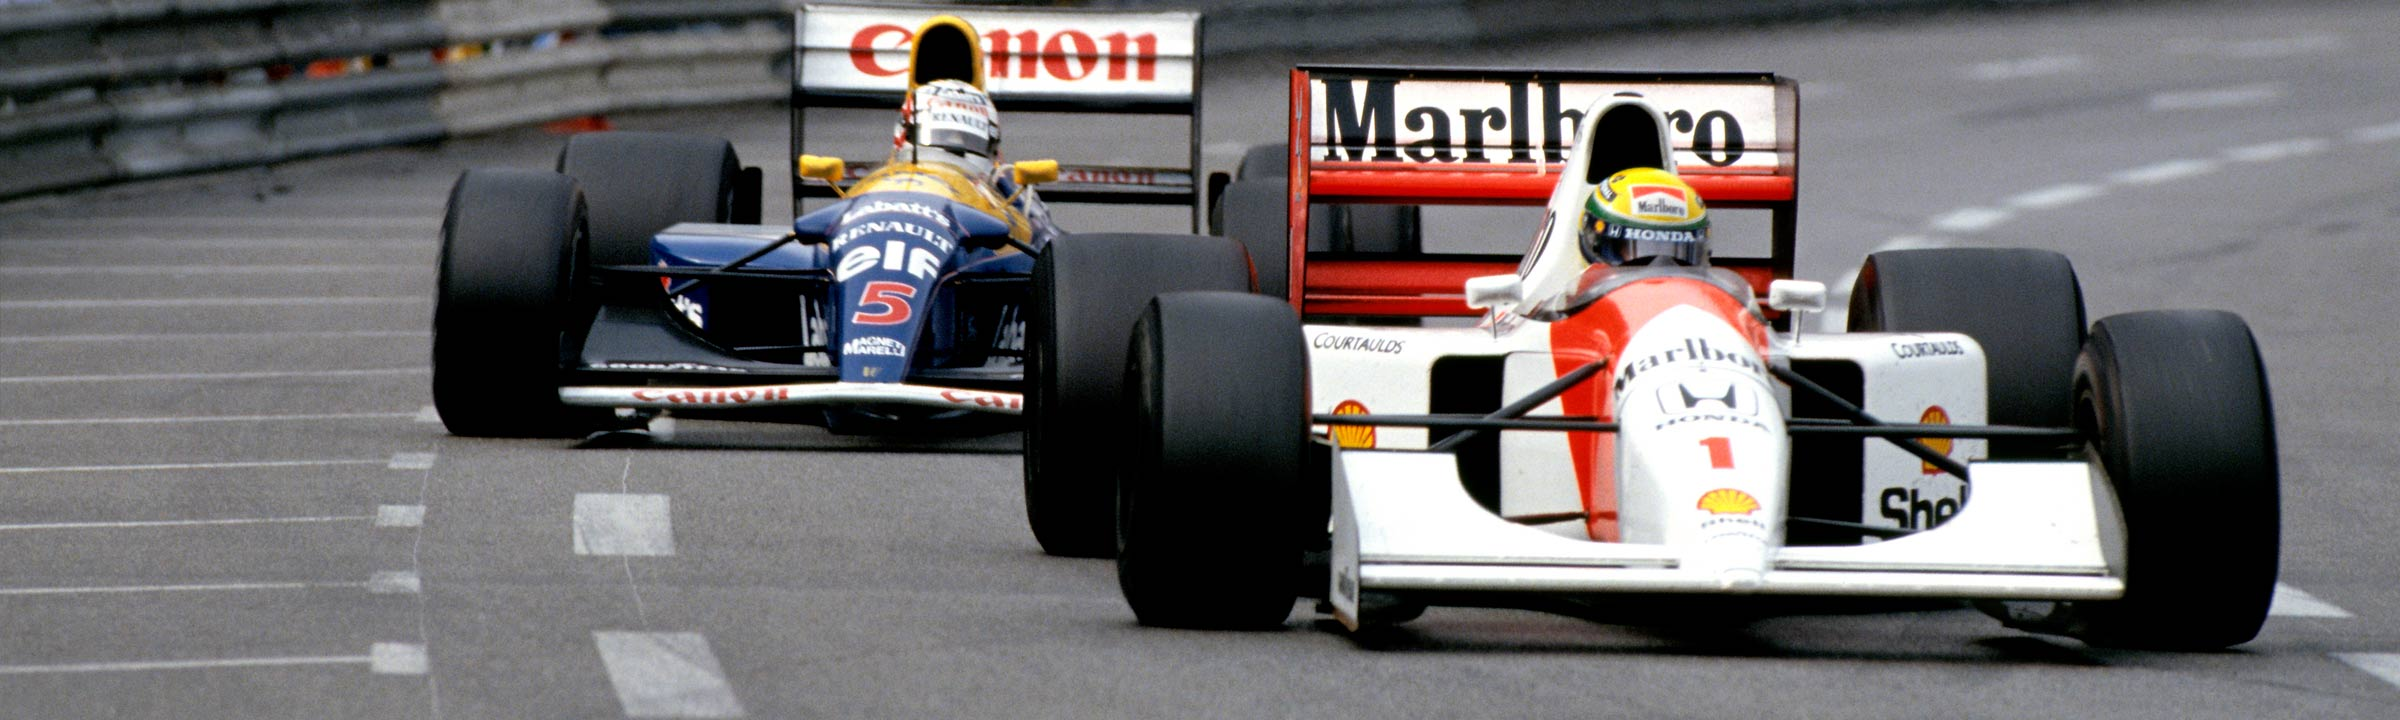 Senna and Mansell battling at Monaco